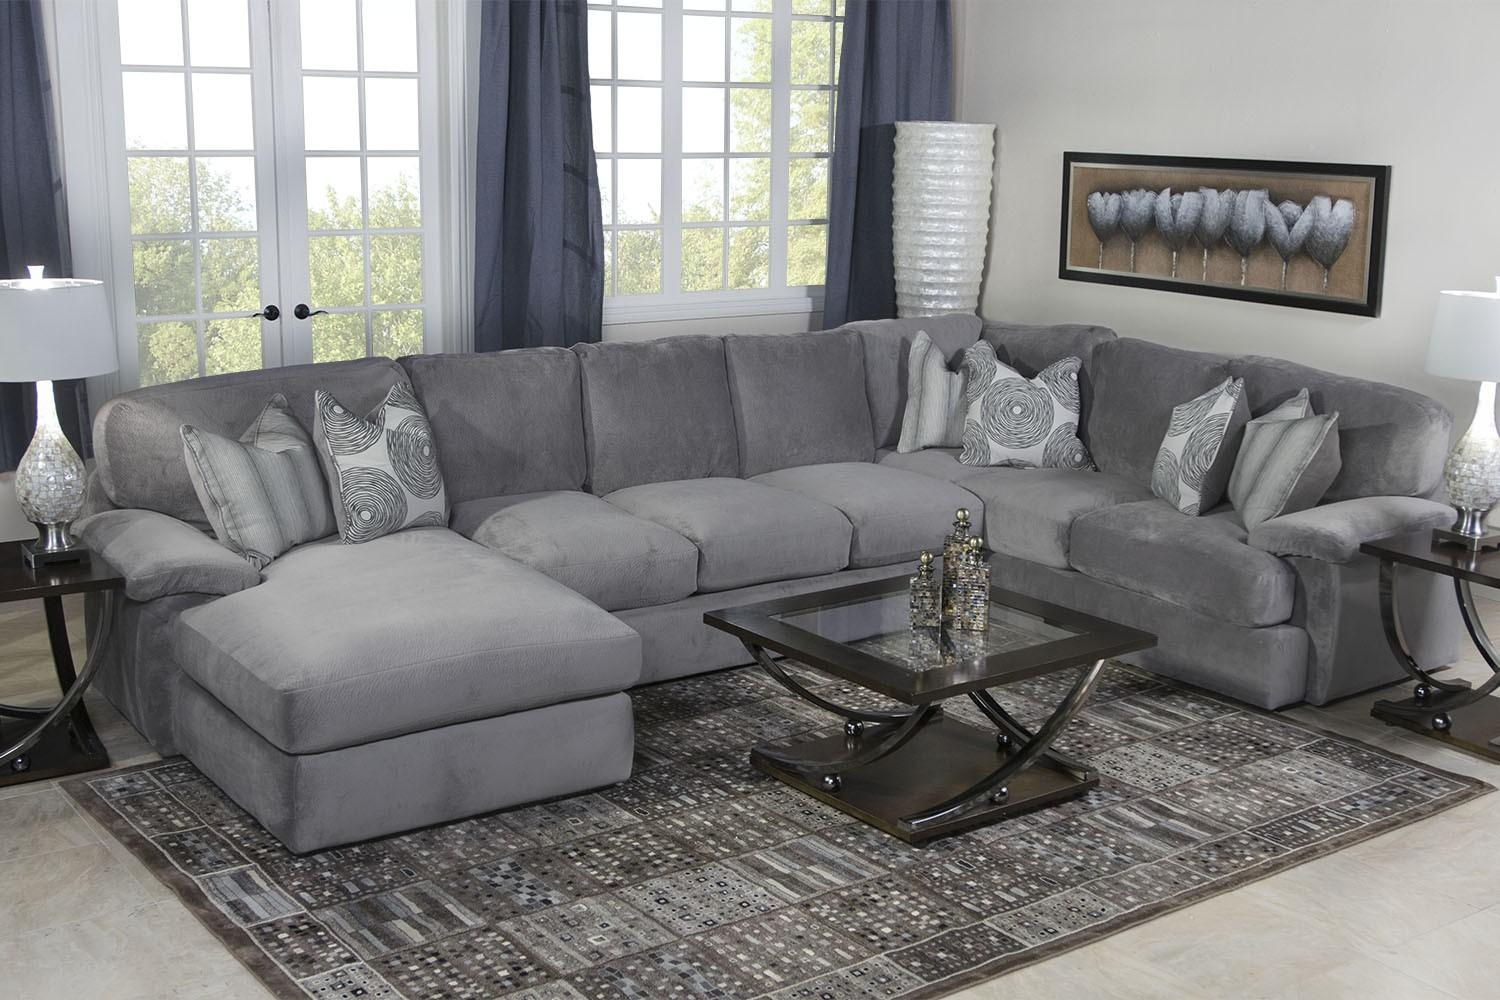 Key West Sectional Living Room In Gray | Mor Furniture For Less Intended For Media Sofa Sectionals (View 2 of 20)